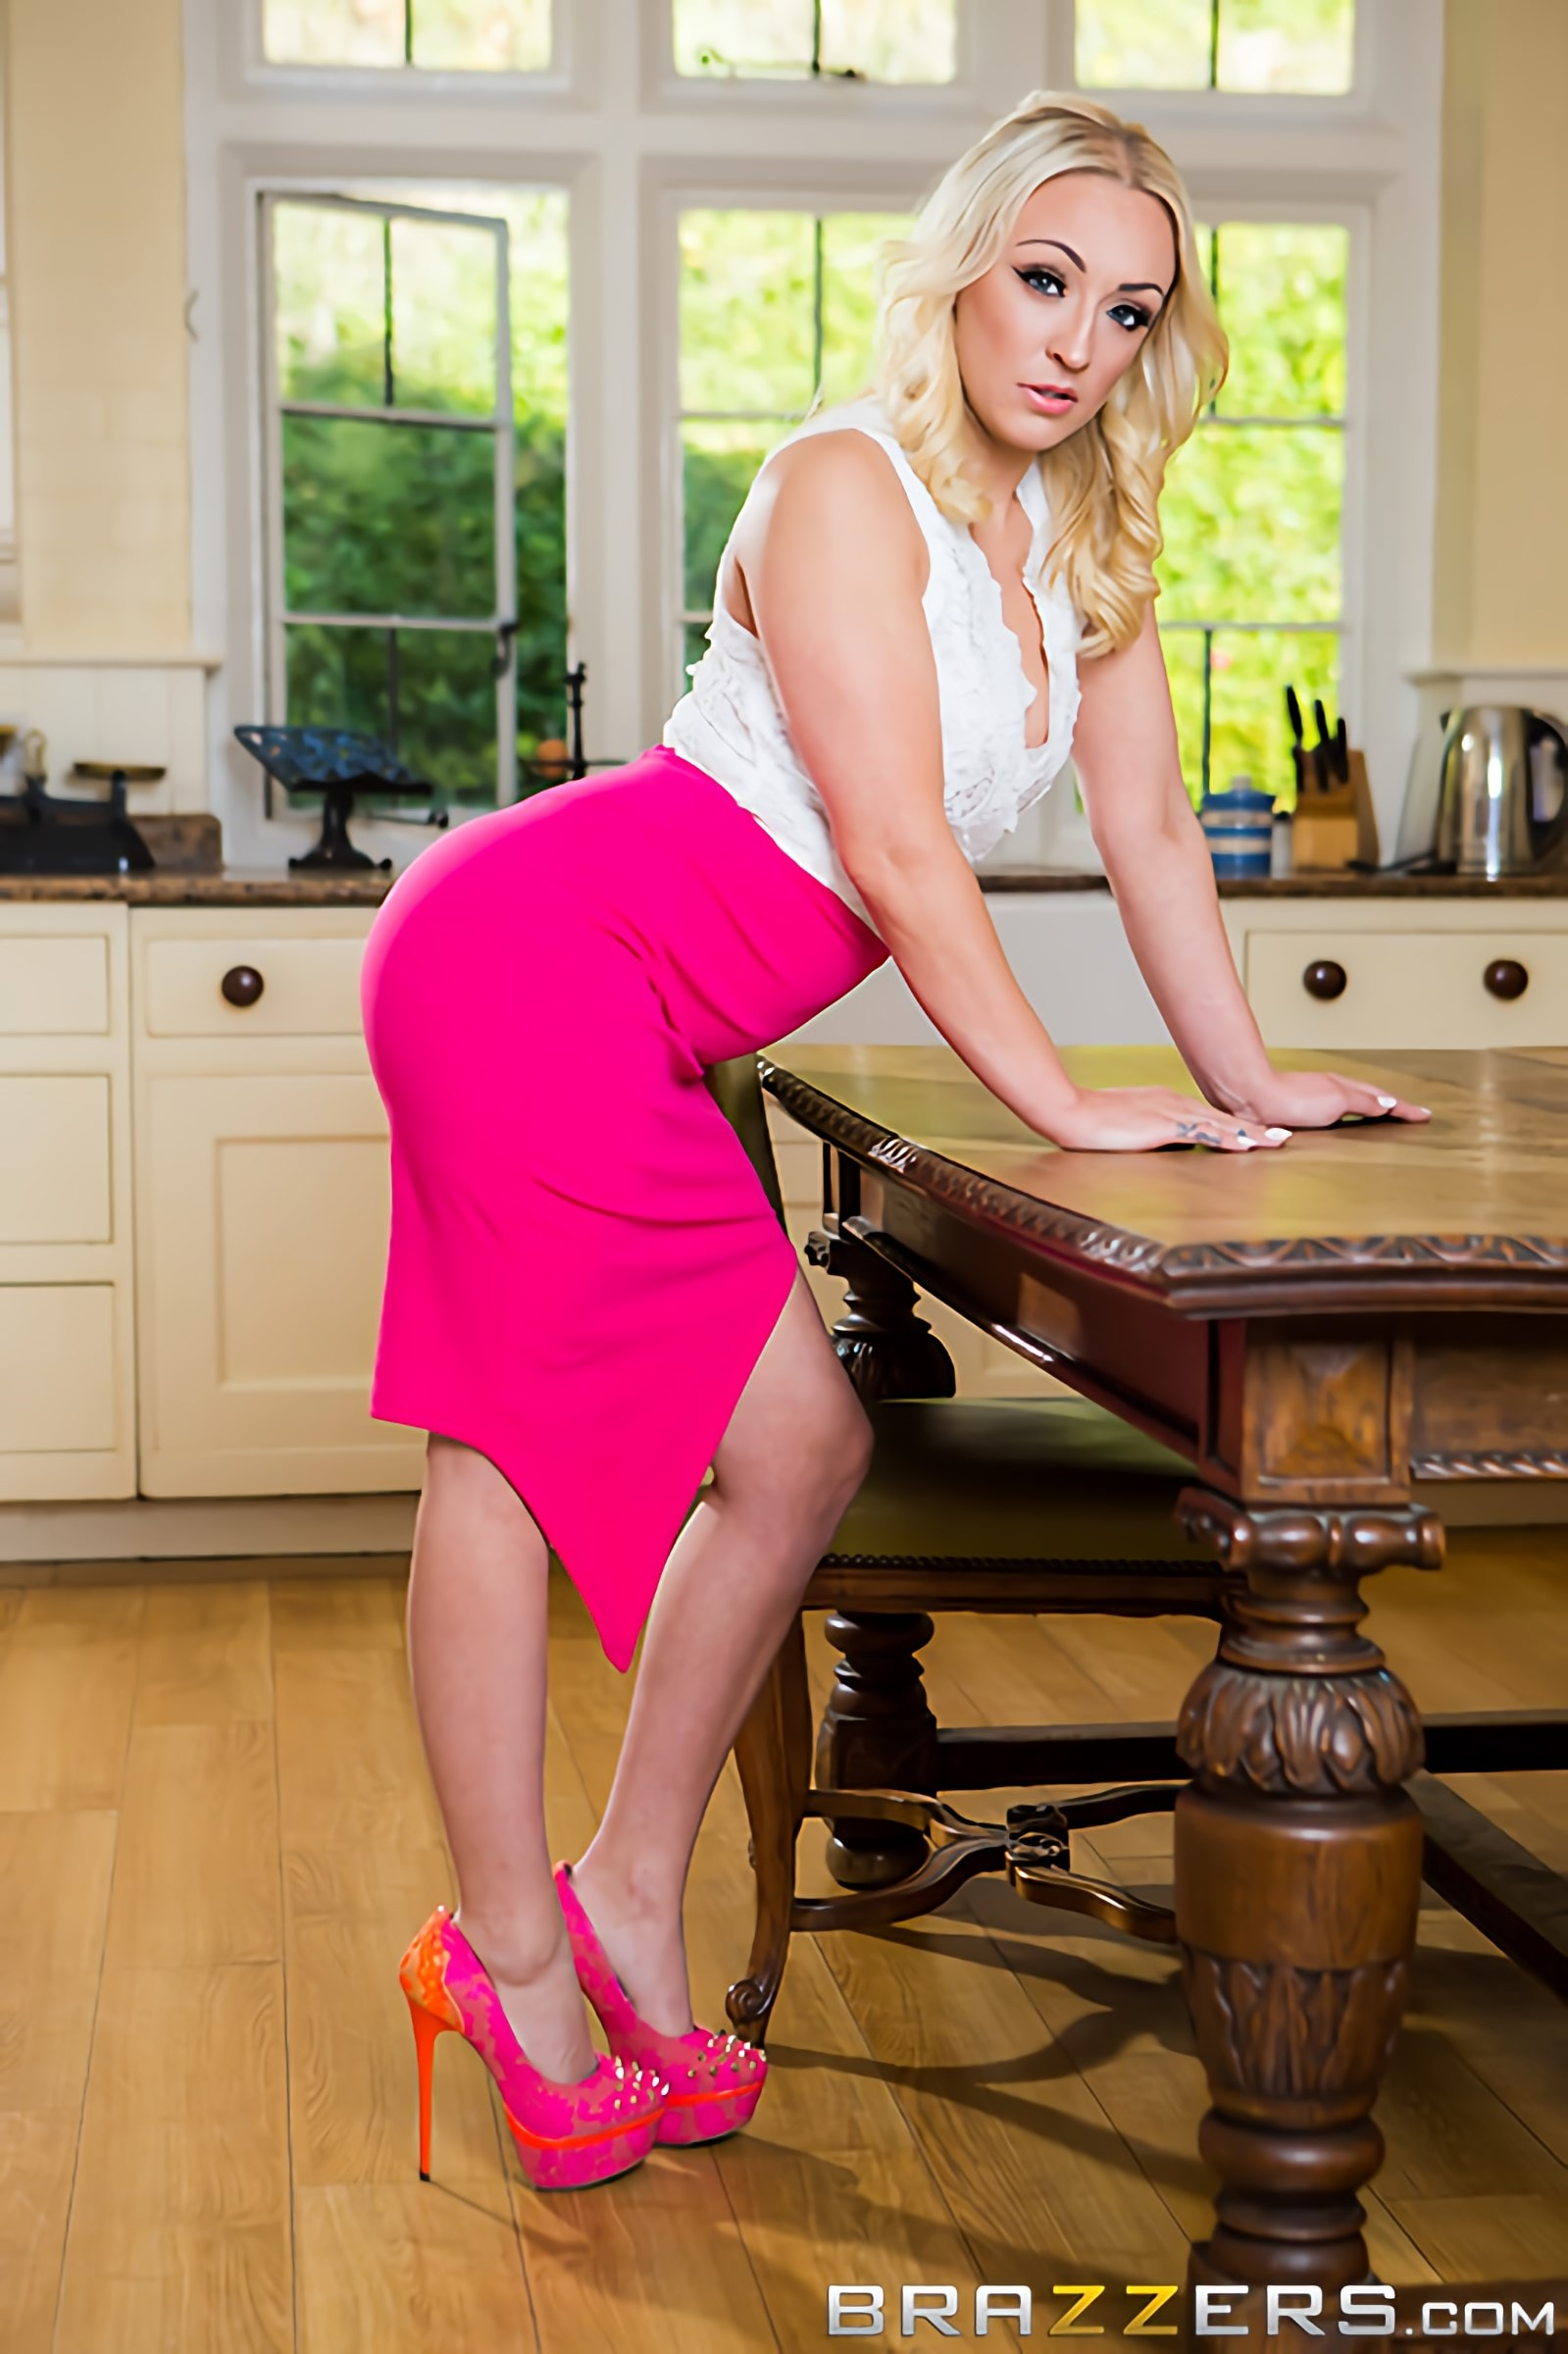 Brazzers 'The Caterer' starring Amber Deen (Photo 8)